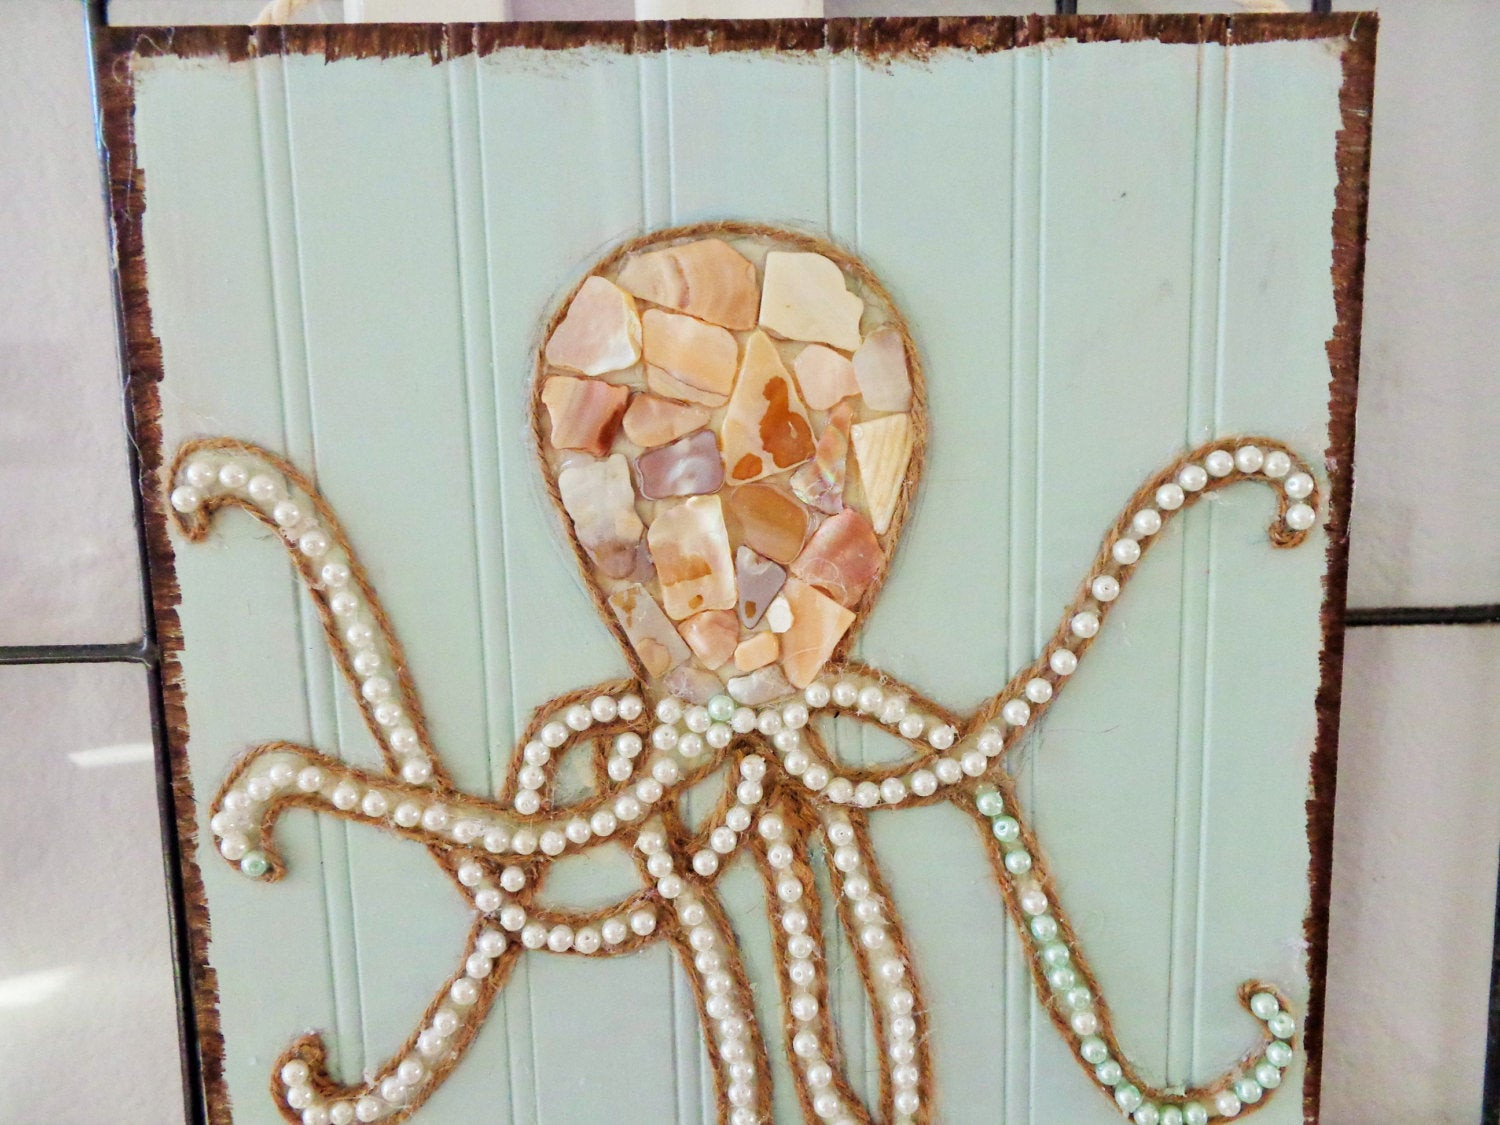 Best ideas about Octopus Wall Art . Save or Pin Octopus Art Beach Wall Decor Coastal Mixed Media by Now.